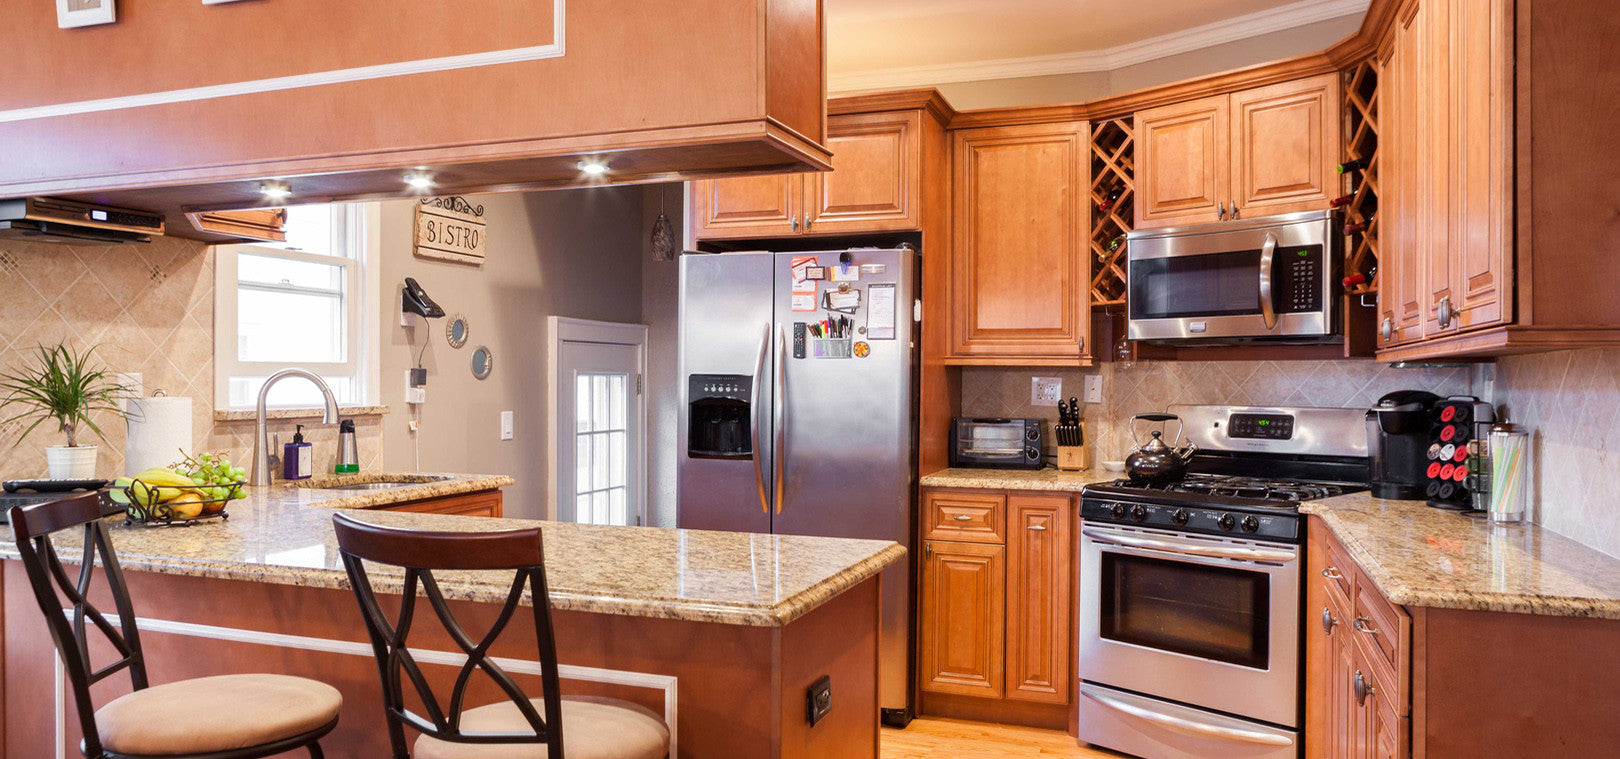 WHY J&K CABINETRY? | Finest Furniture Finishes and Features